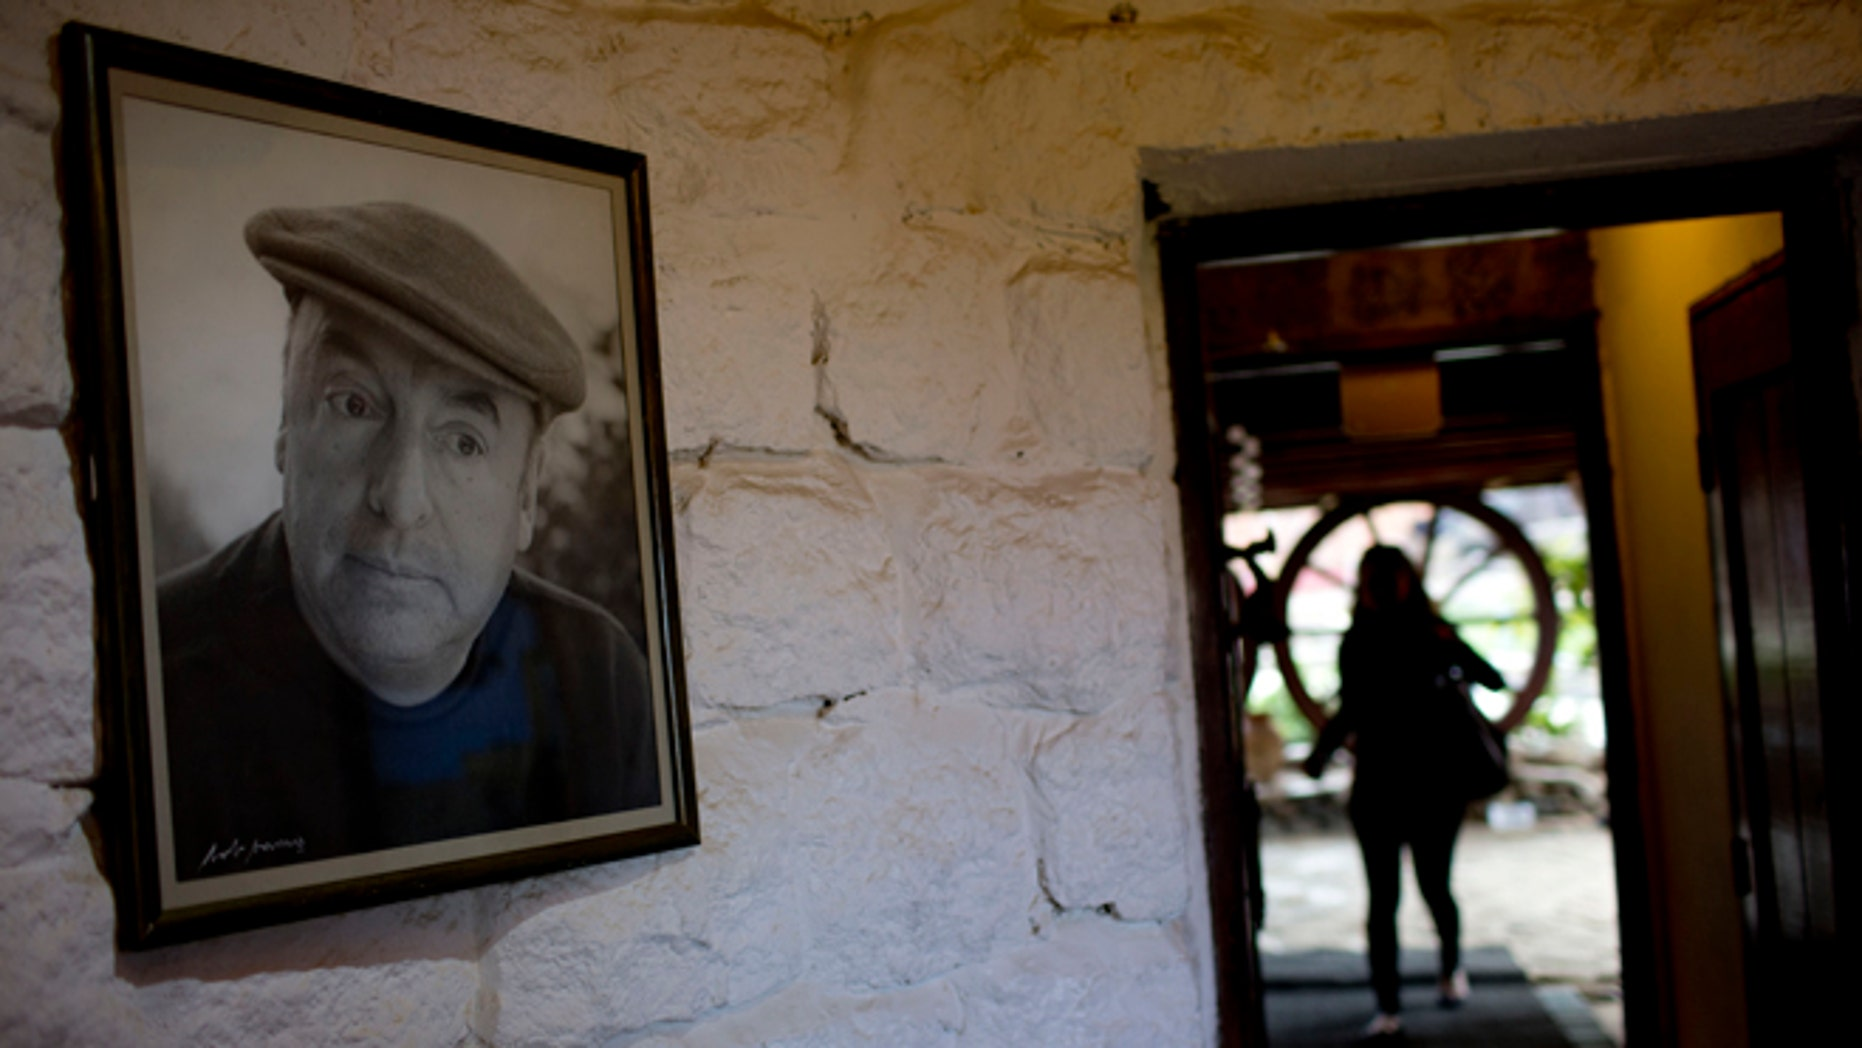 In this April 26, 2015 photo, a framed photo of Nobel Prize-winning poet Pablo Neruda hangs on a wall, as a tourist enters his favorite home in Isla Negra, Chile. (AP Photo/Natacha Pisarenko)